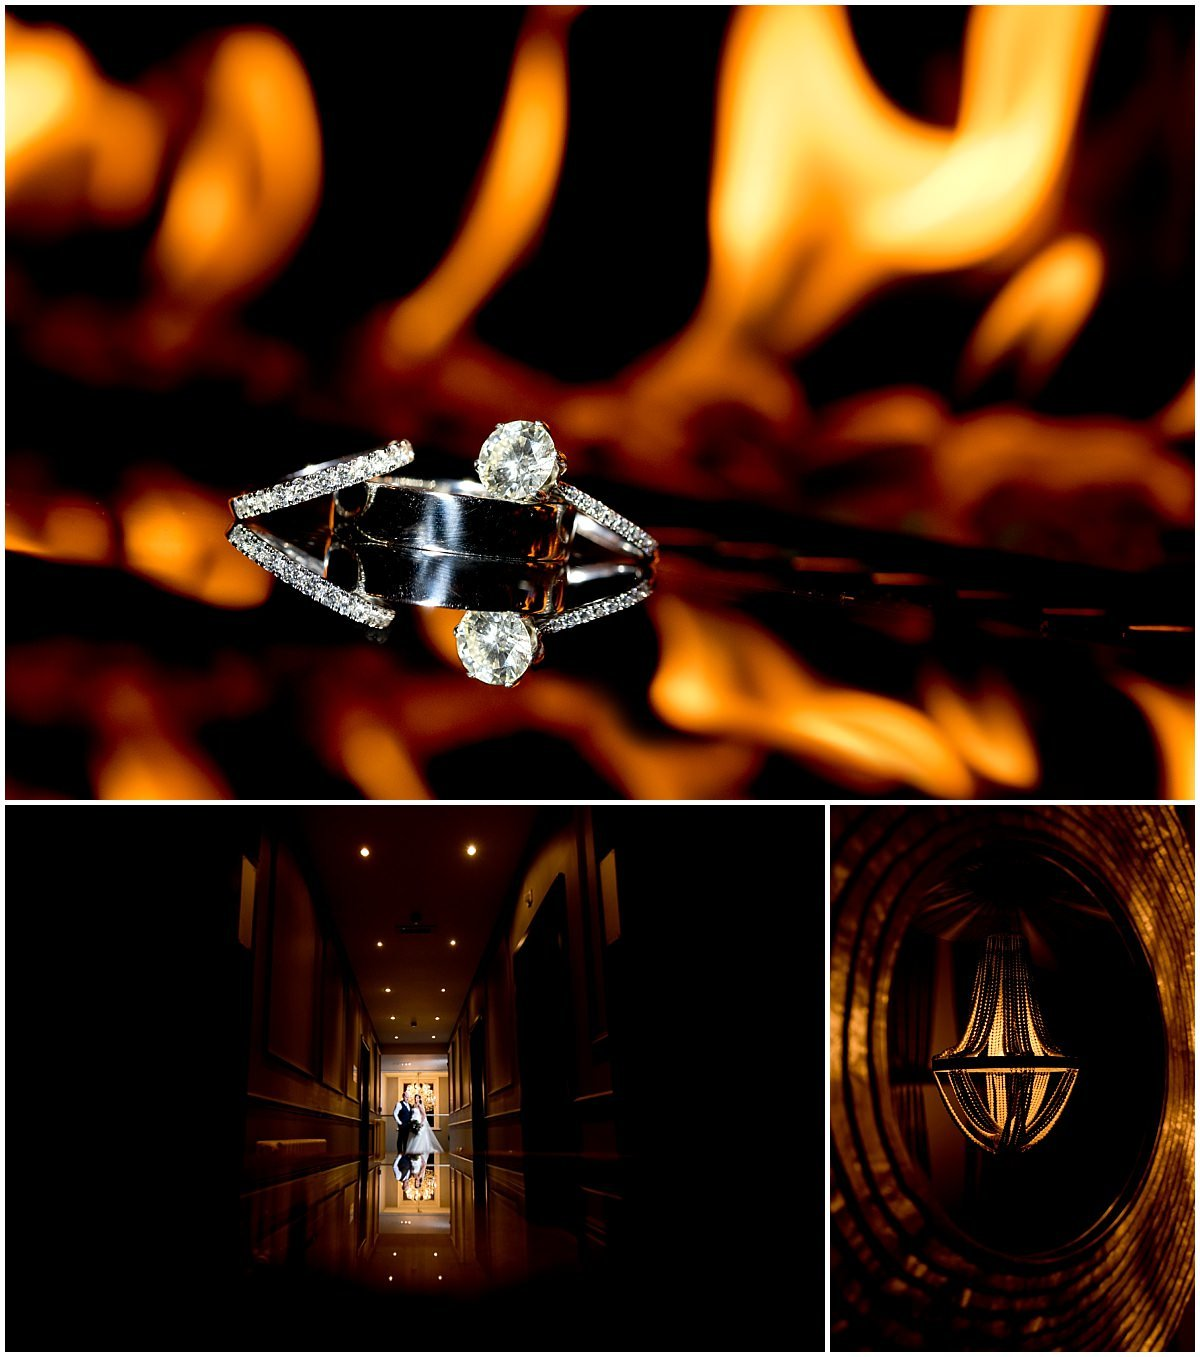 Epic ring photos